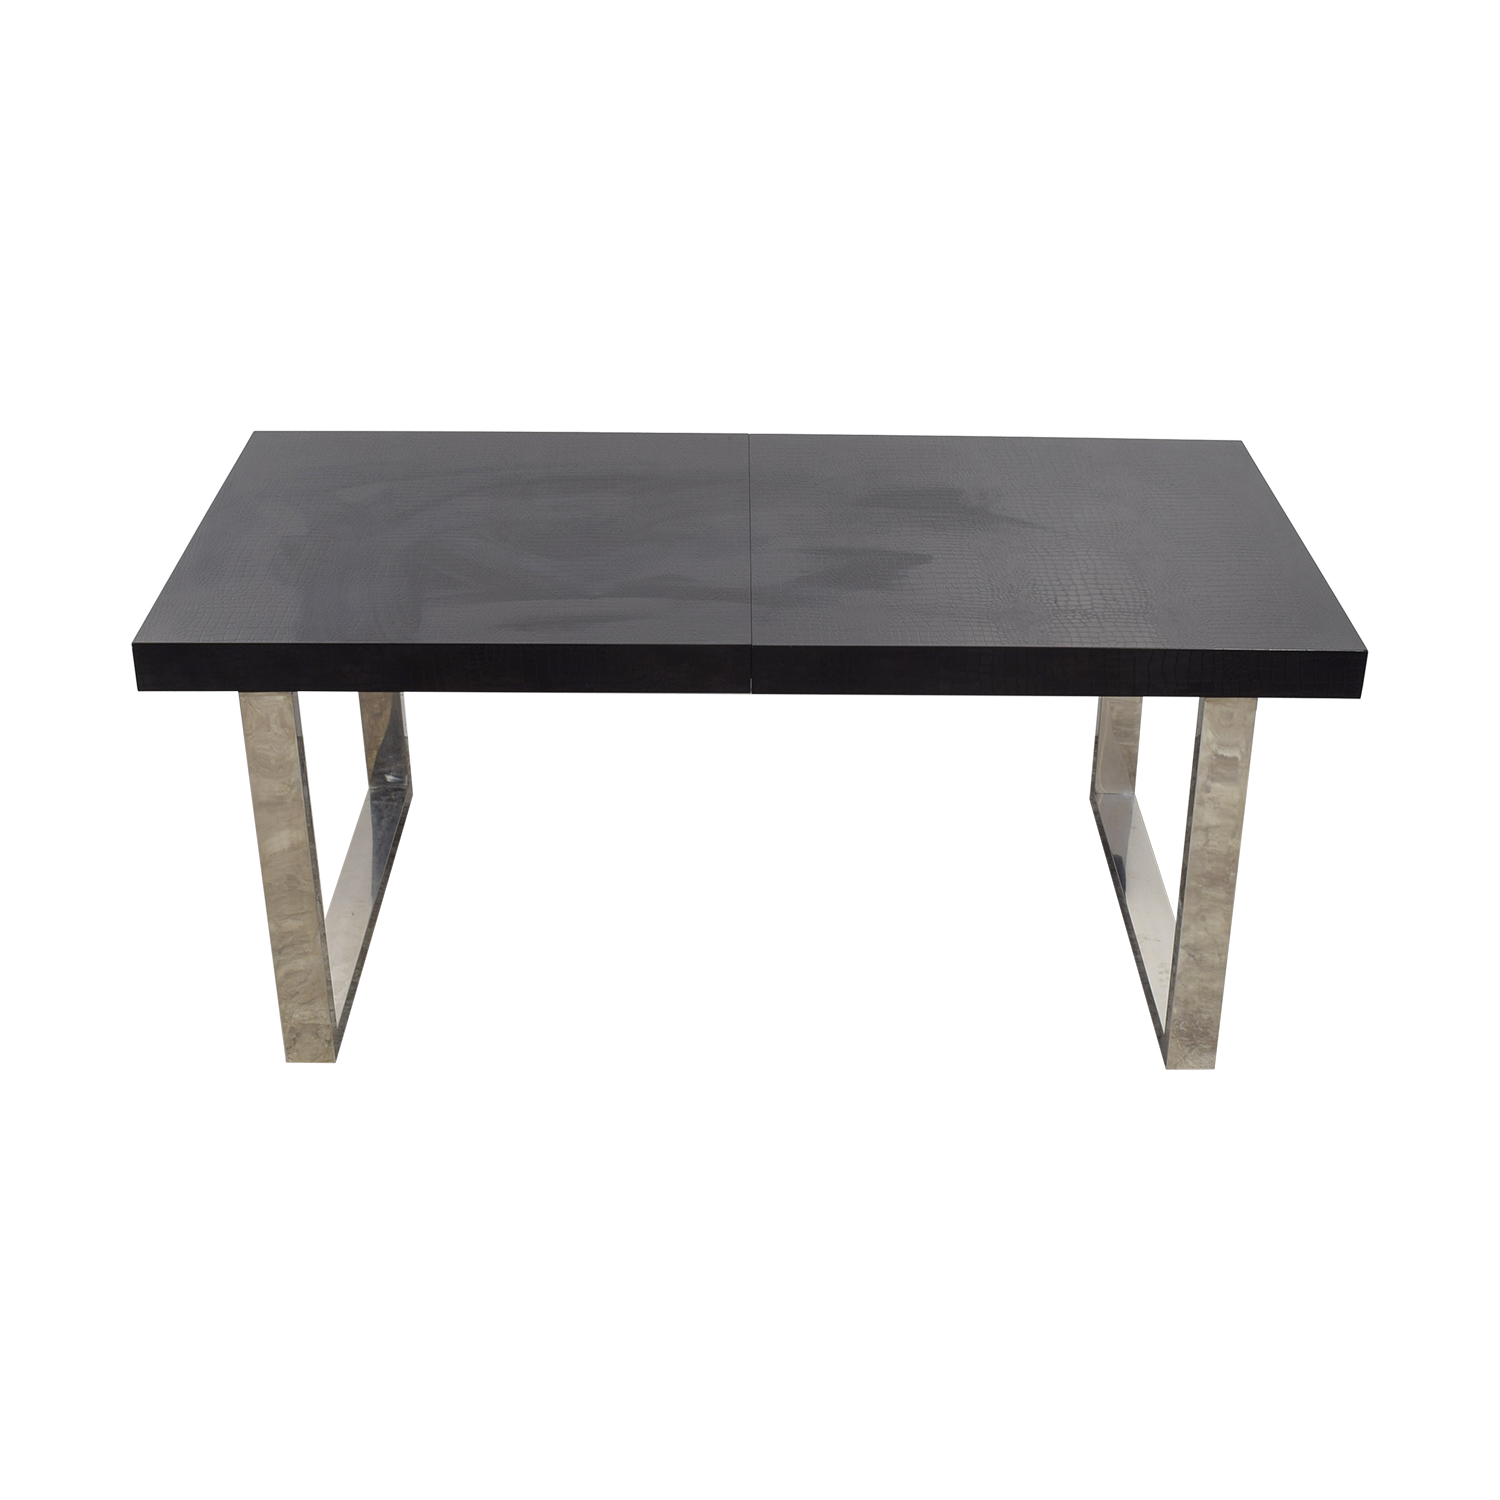 A&X Skyline Black Crocodile Lacquer Extendable Dining Table sale